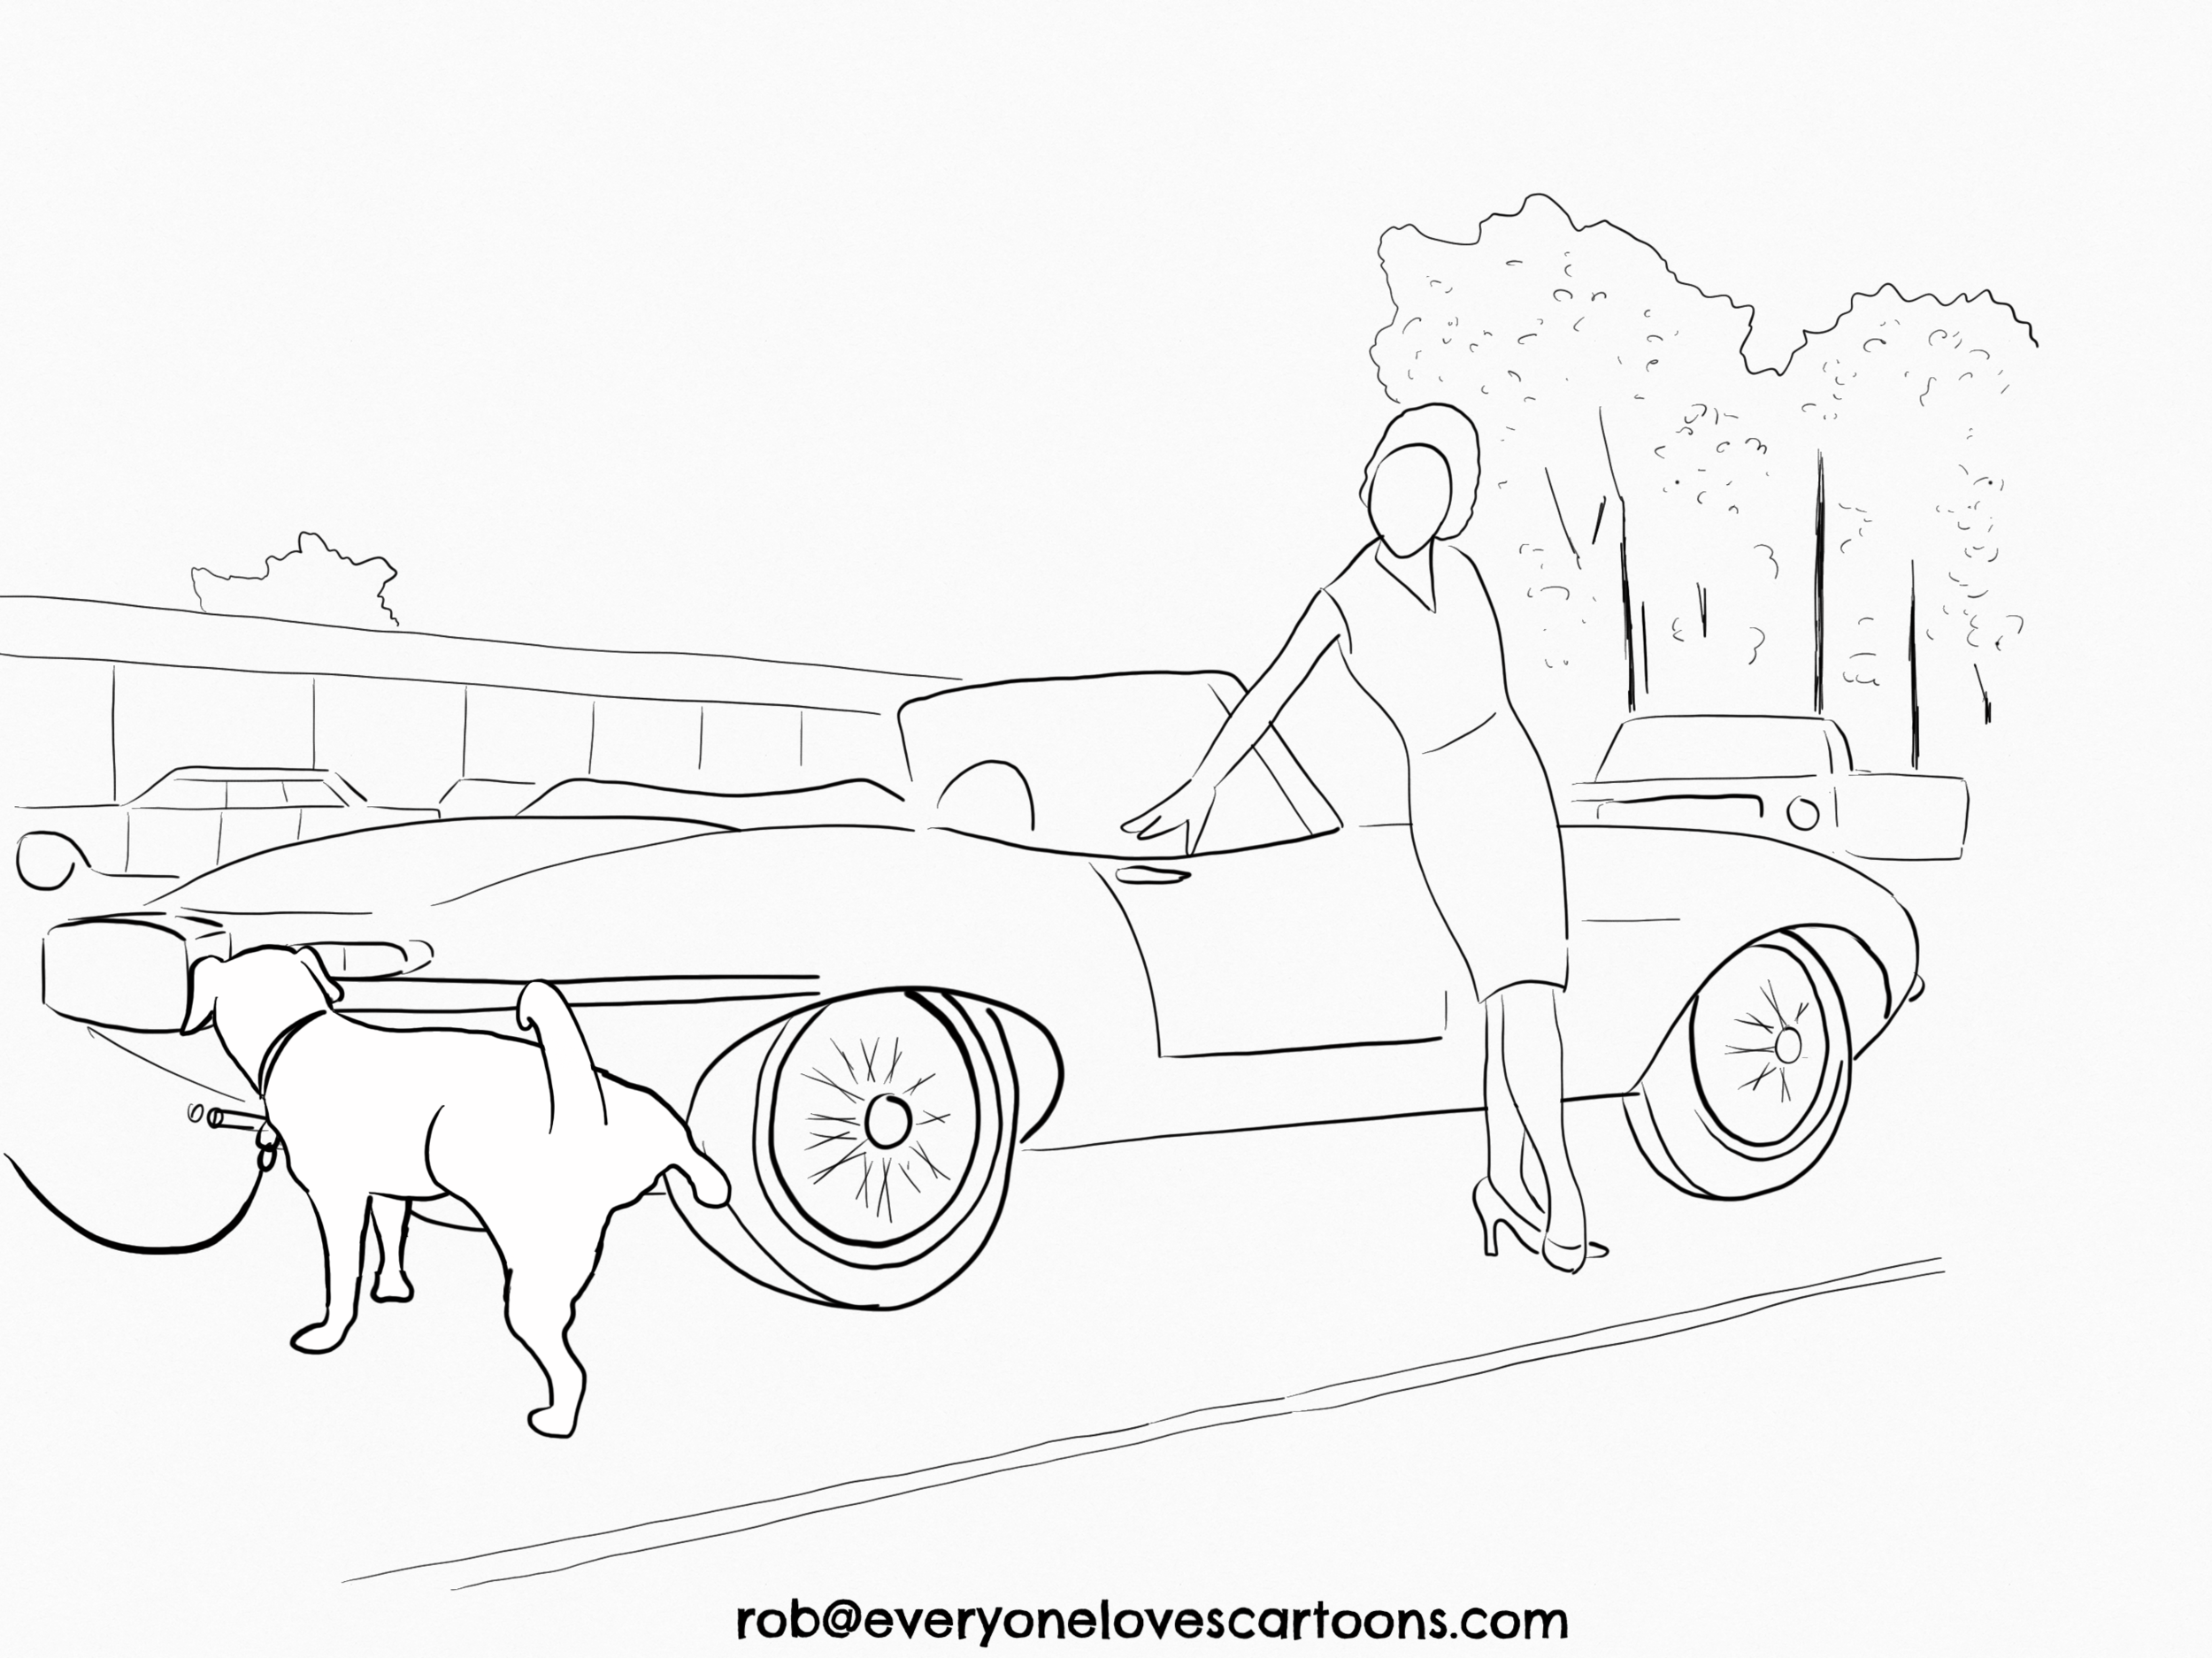 2. Outline of the characters and background. I found a photo of a woman leaning on an E-type and based the above outline on it.